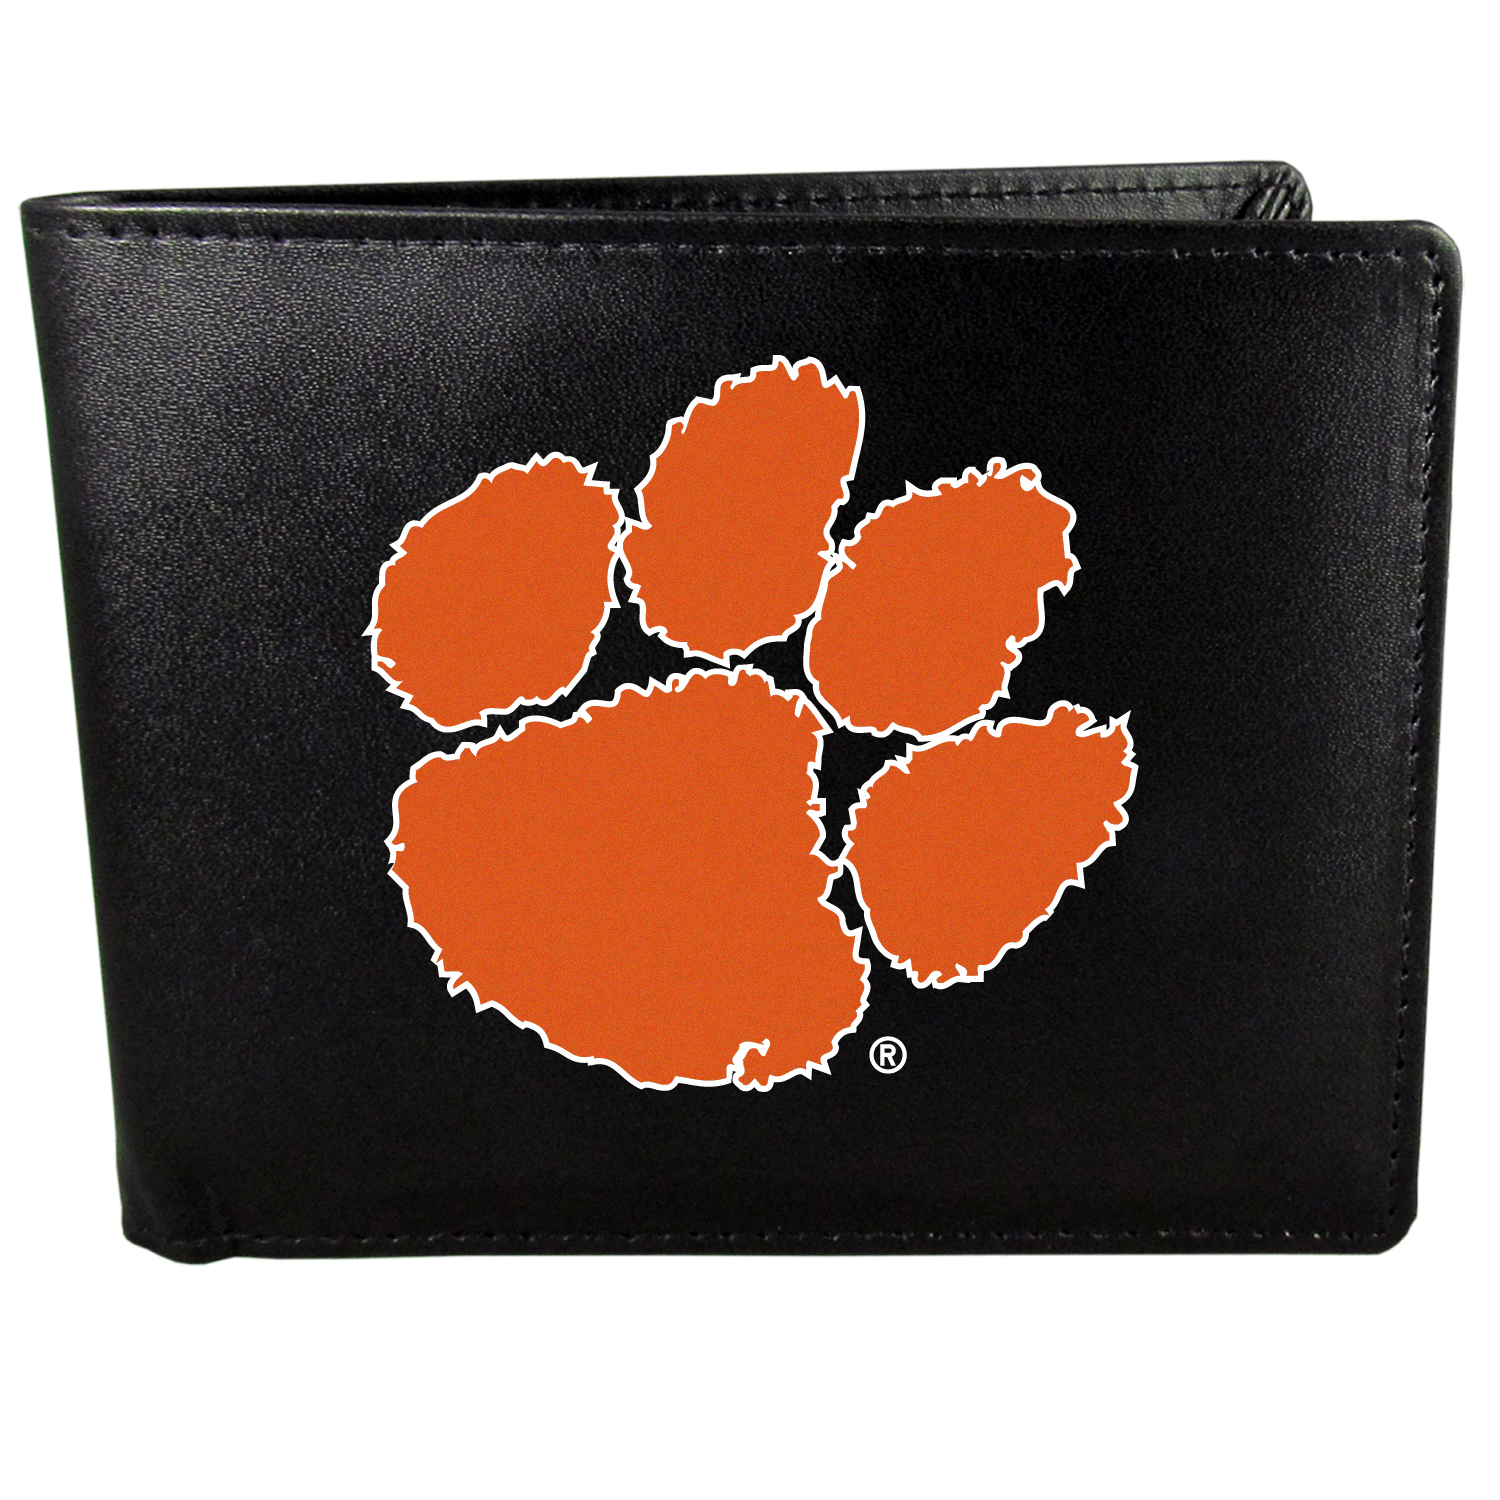 Clemson Tigers Bi-fold Wallet Large Logo - Sports fans do not have to sacrifice style with this classic bi-fold wallet that sports the Clemson Tigers?extra large logo. This men's fashion accessory has a leather grain look and expert craftmanship for a quality wallet at a great price. The wallet features inner credit card slots, windowed ID slot and a large billfold pocket. The front of the wallet features a printed team logo.